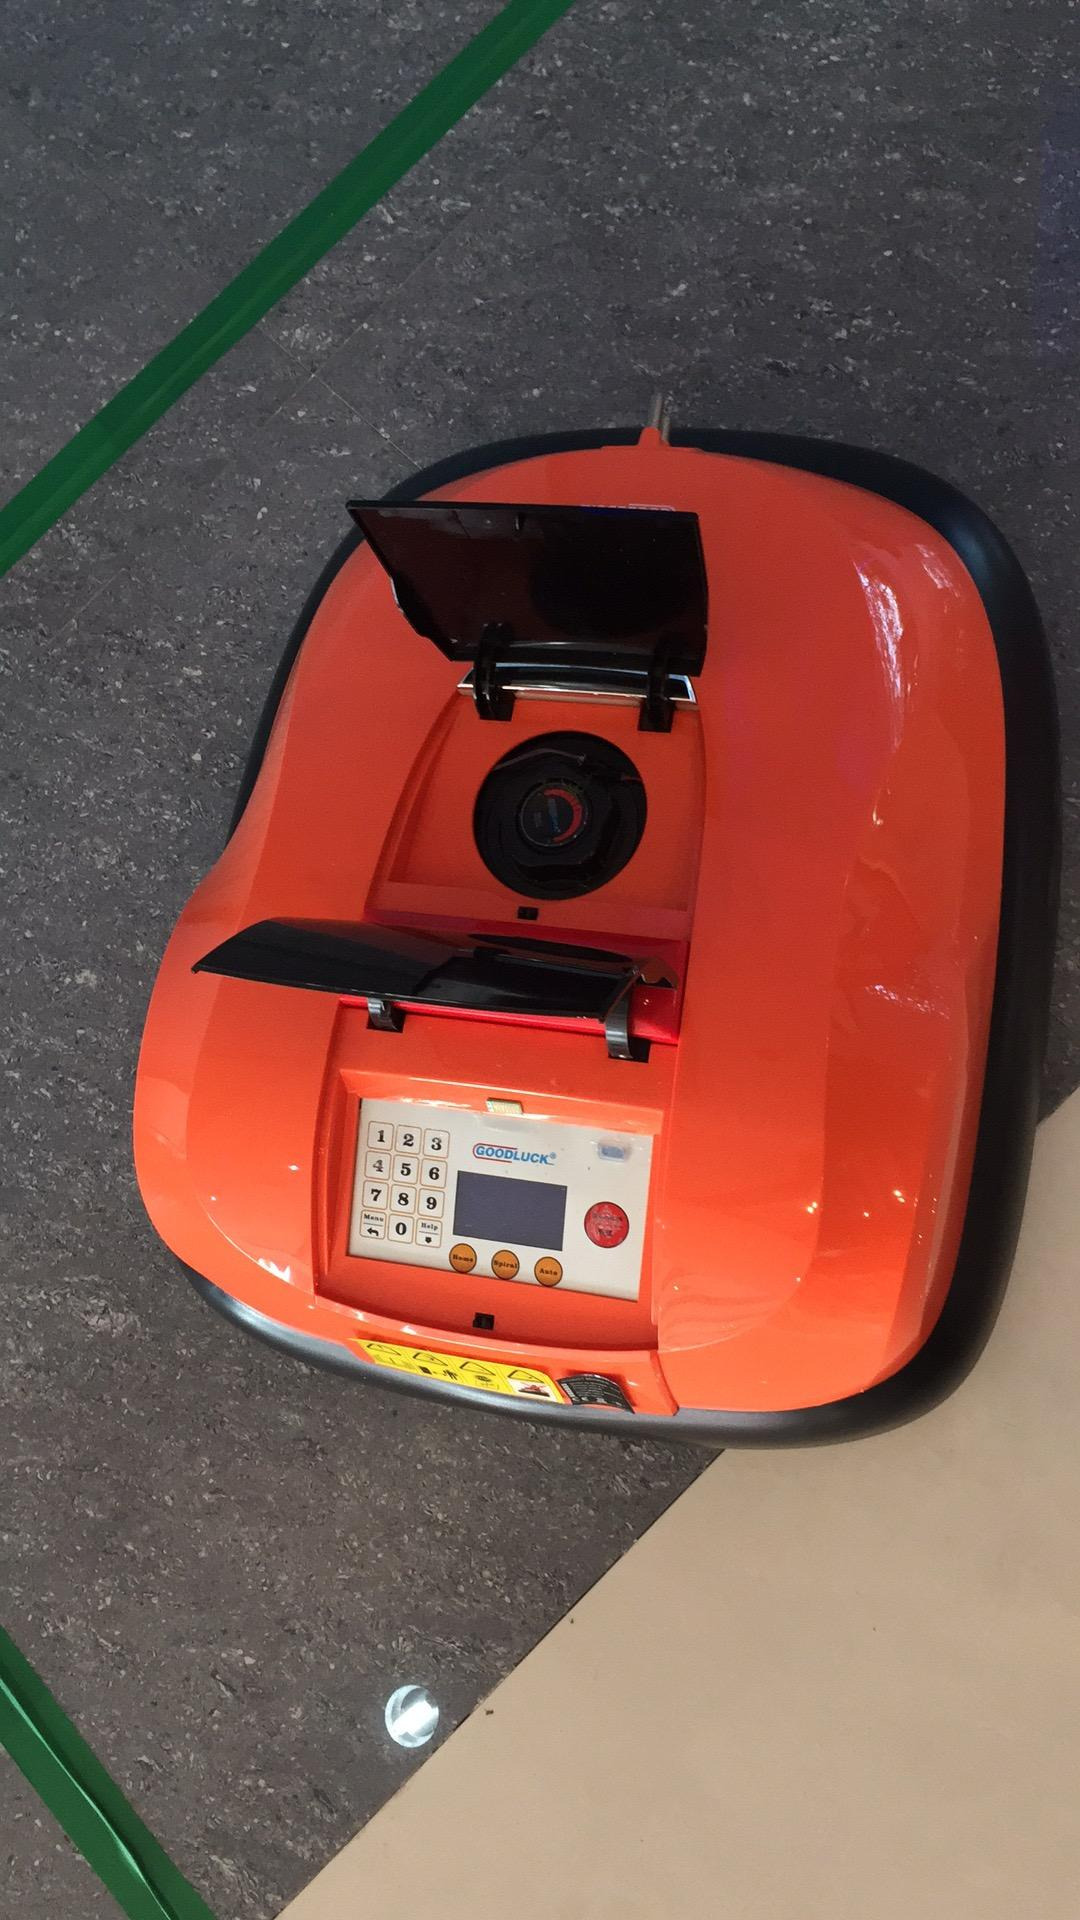 Robot Lawn Mower Automatic 1